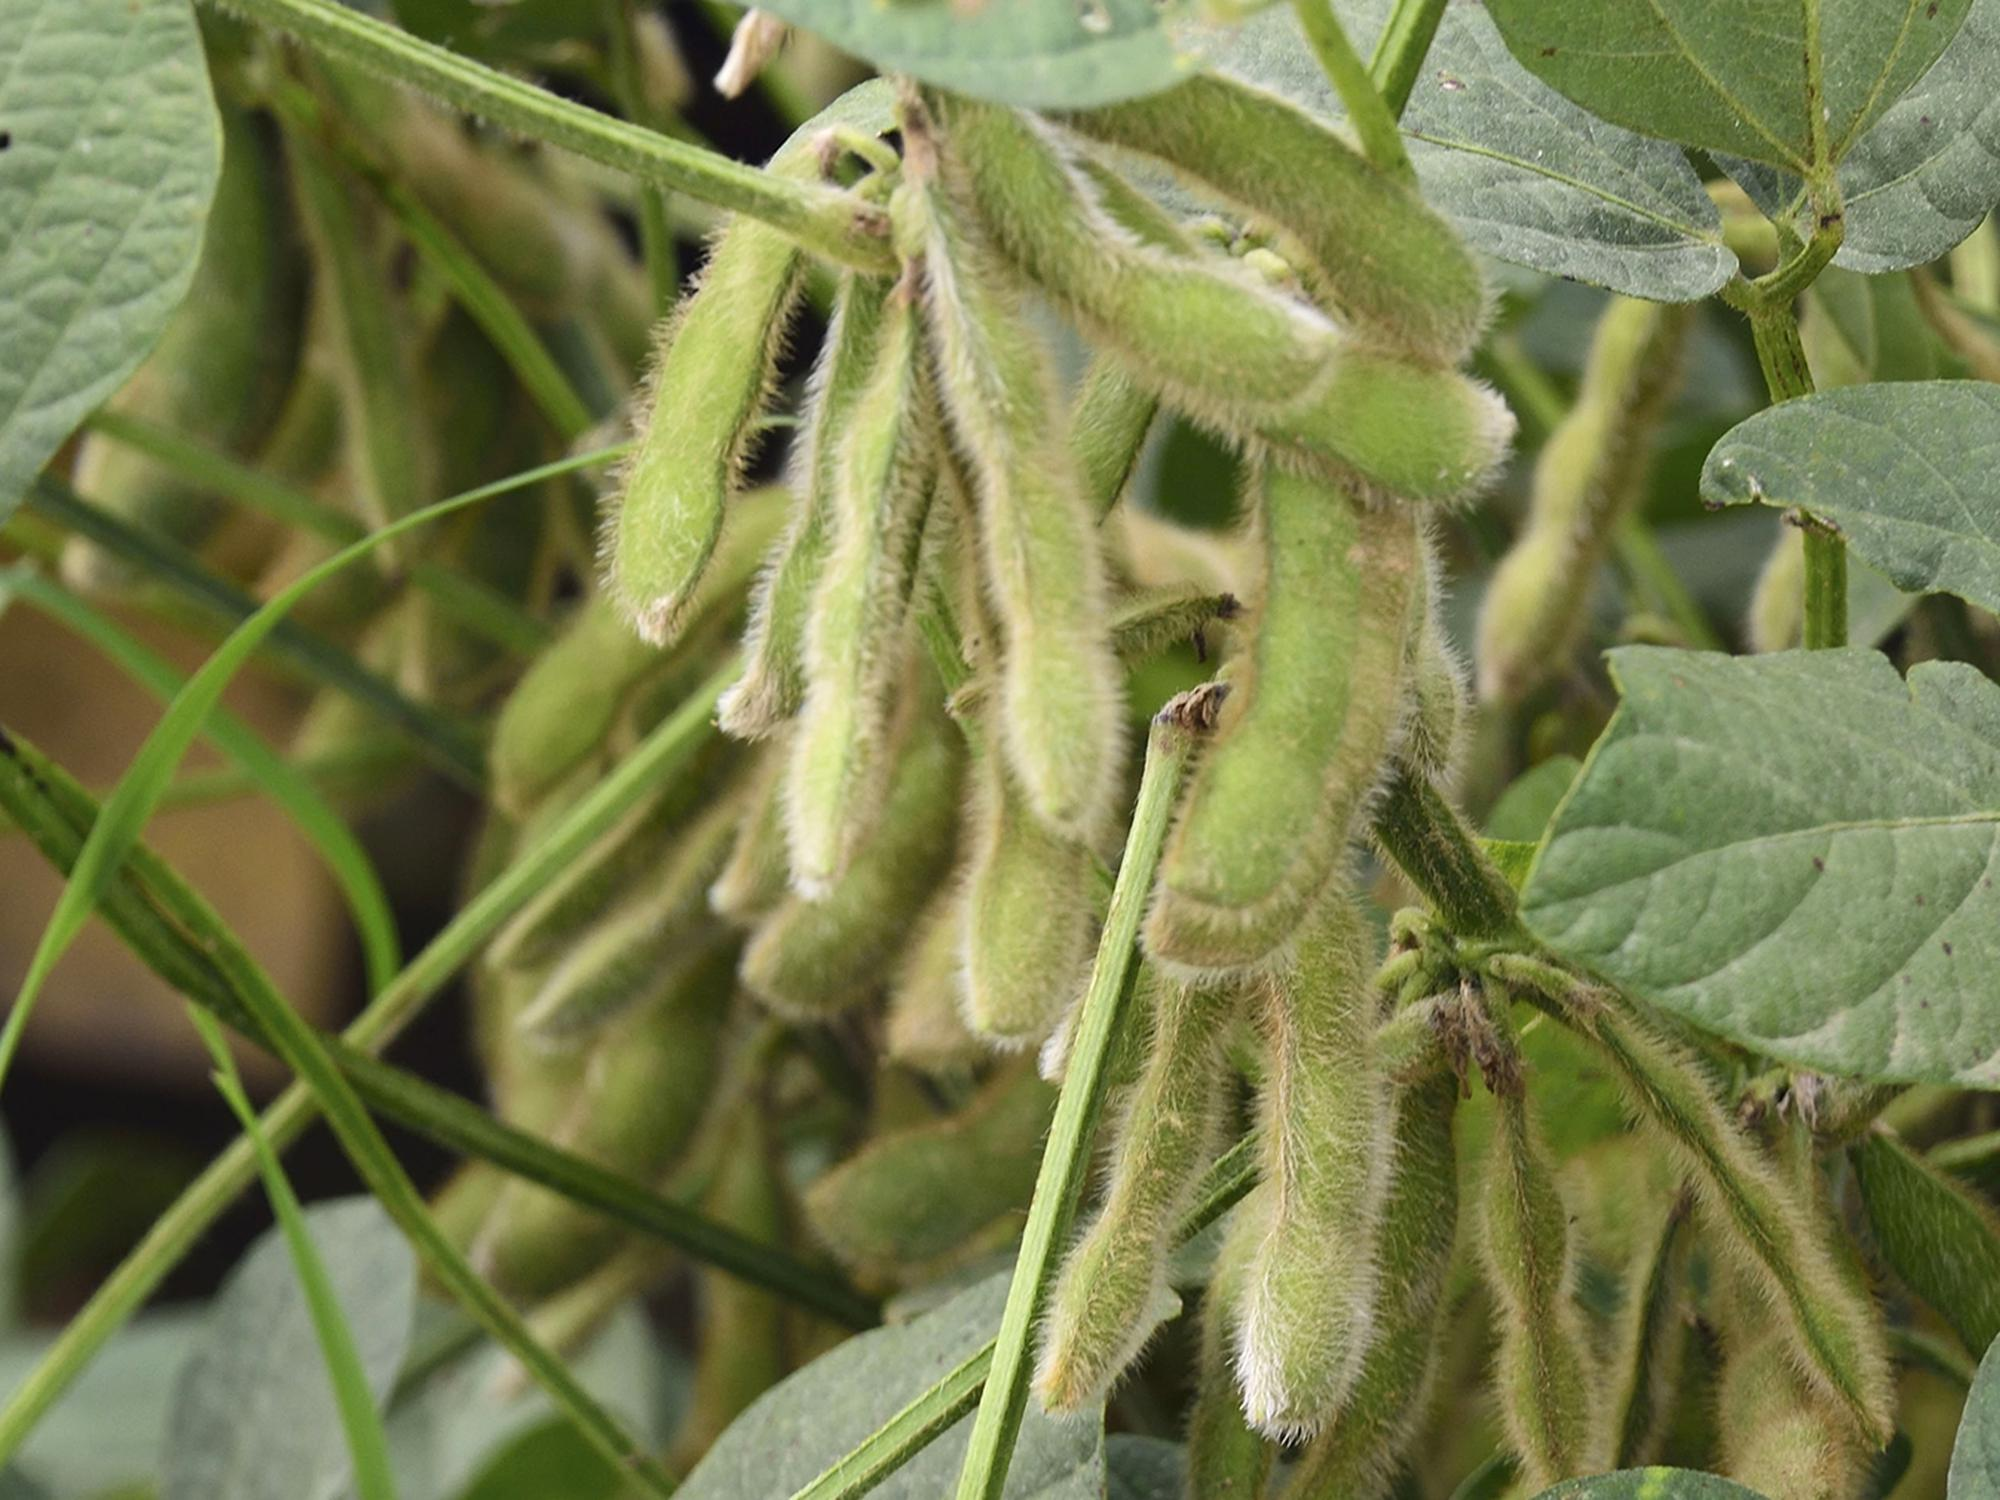 Green soybean plants set pods in a field.